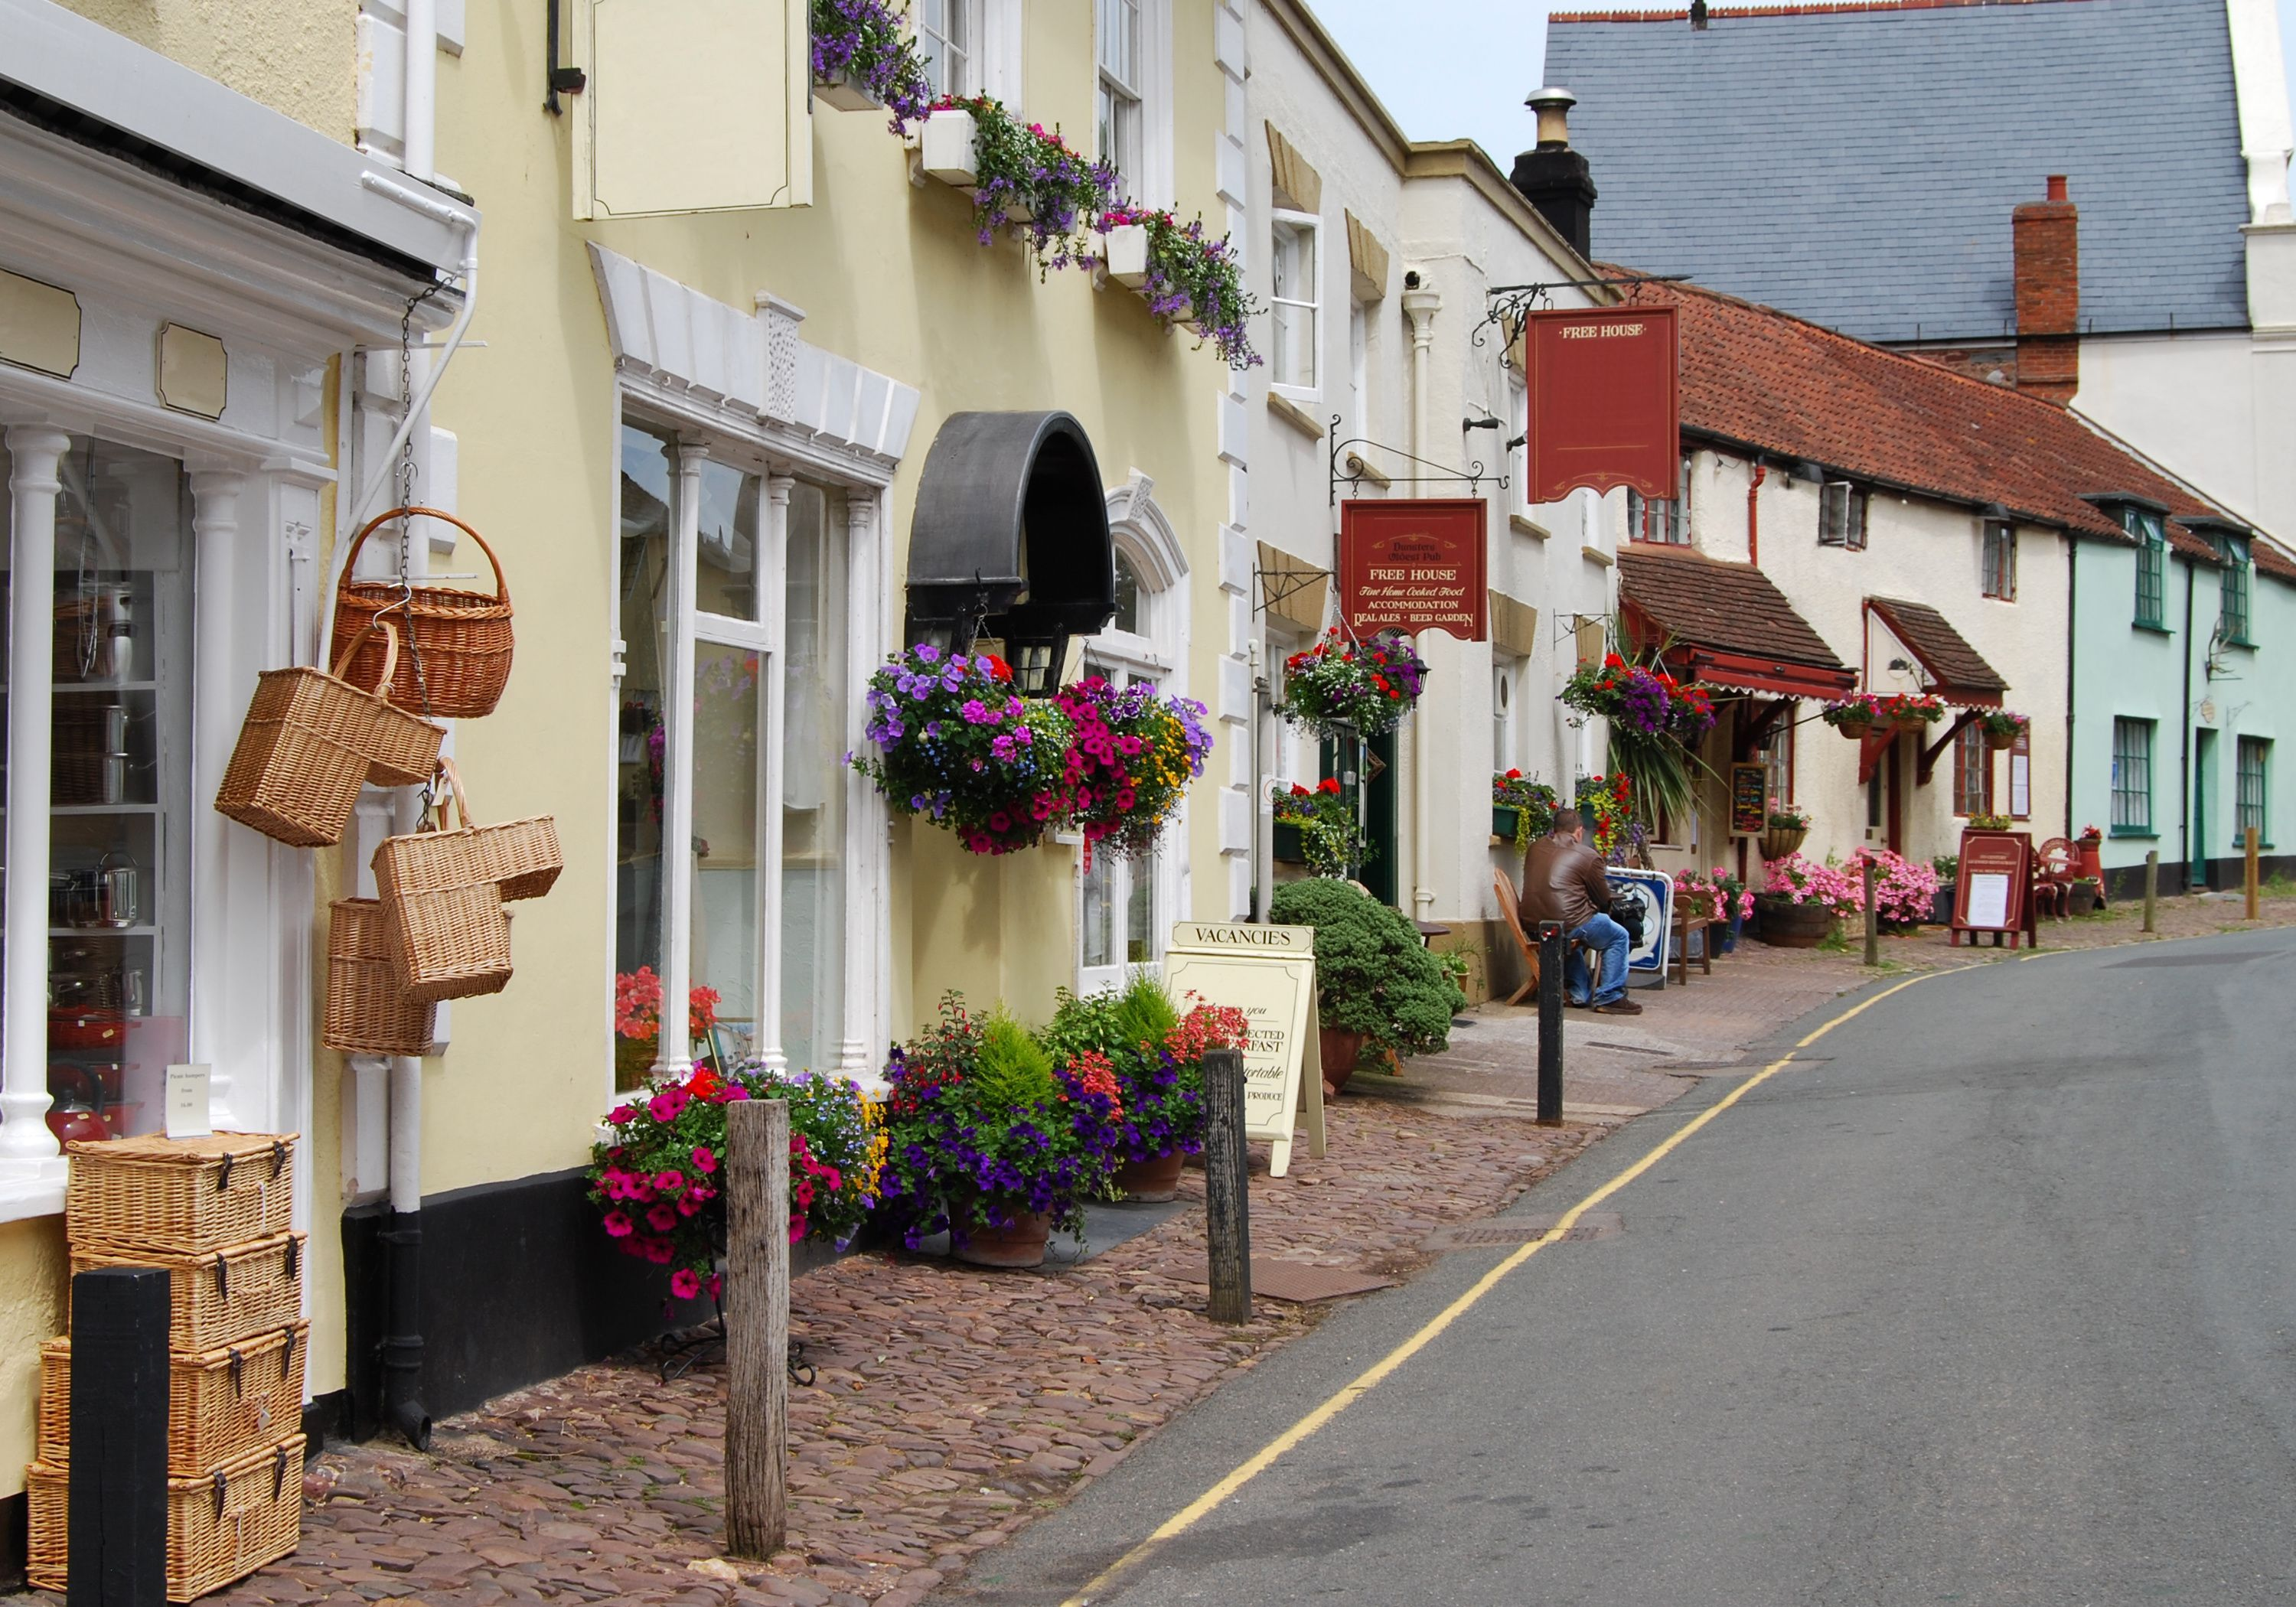 pretty coastal village with colourful cottages and shops